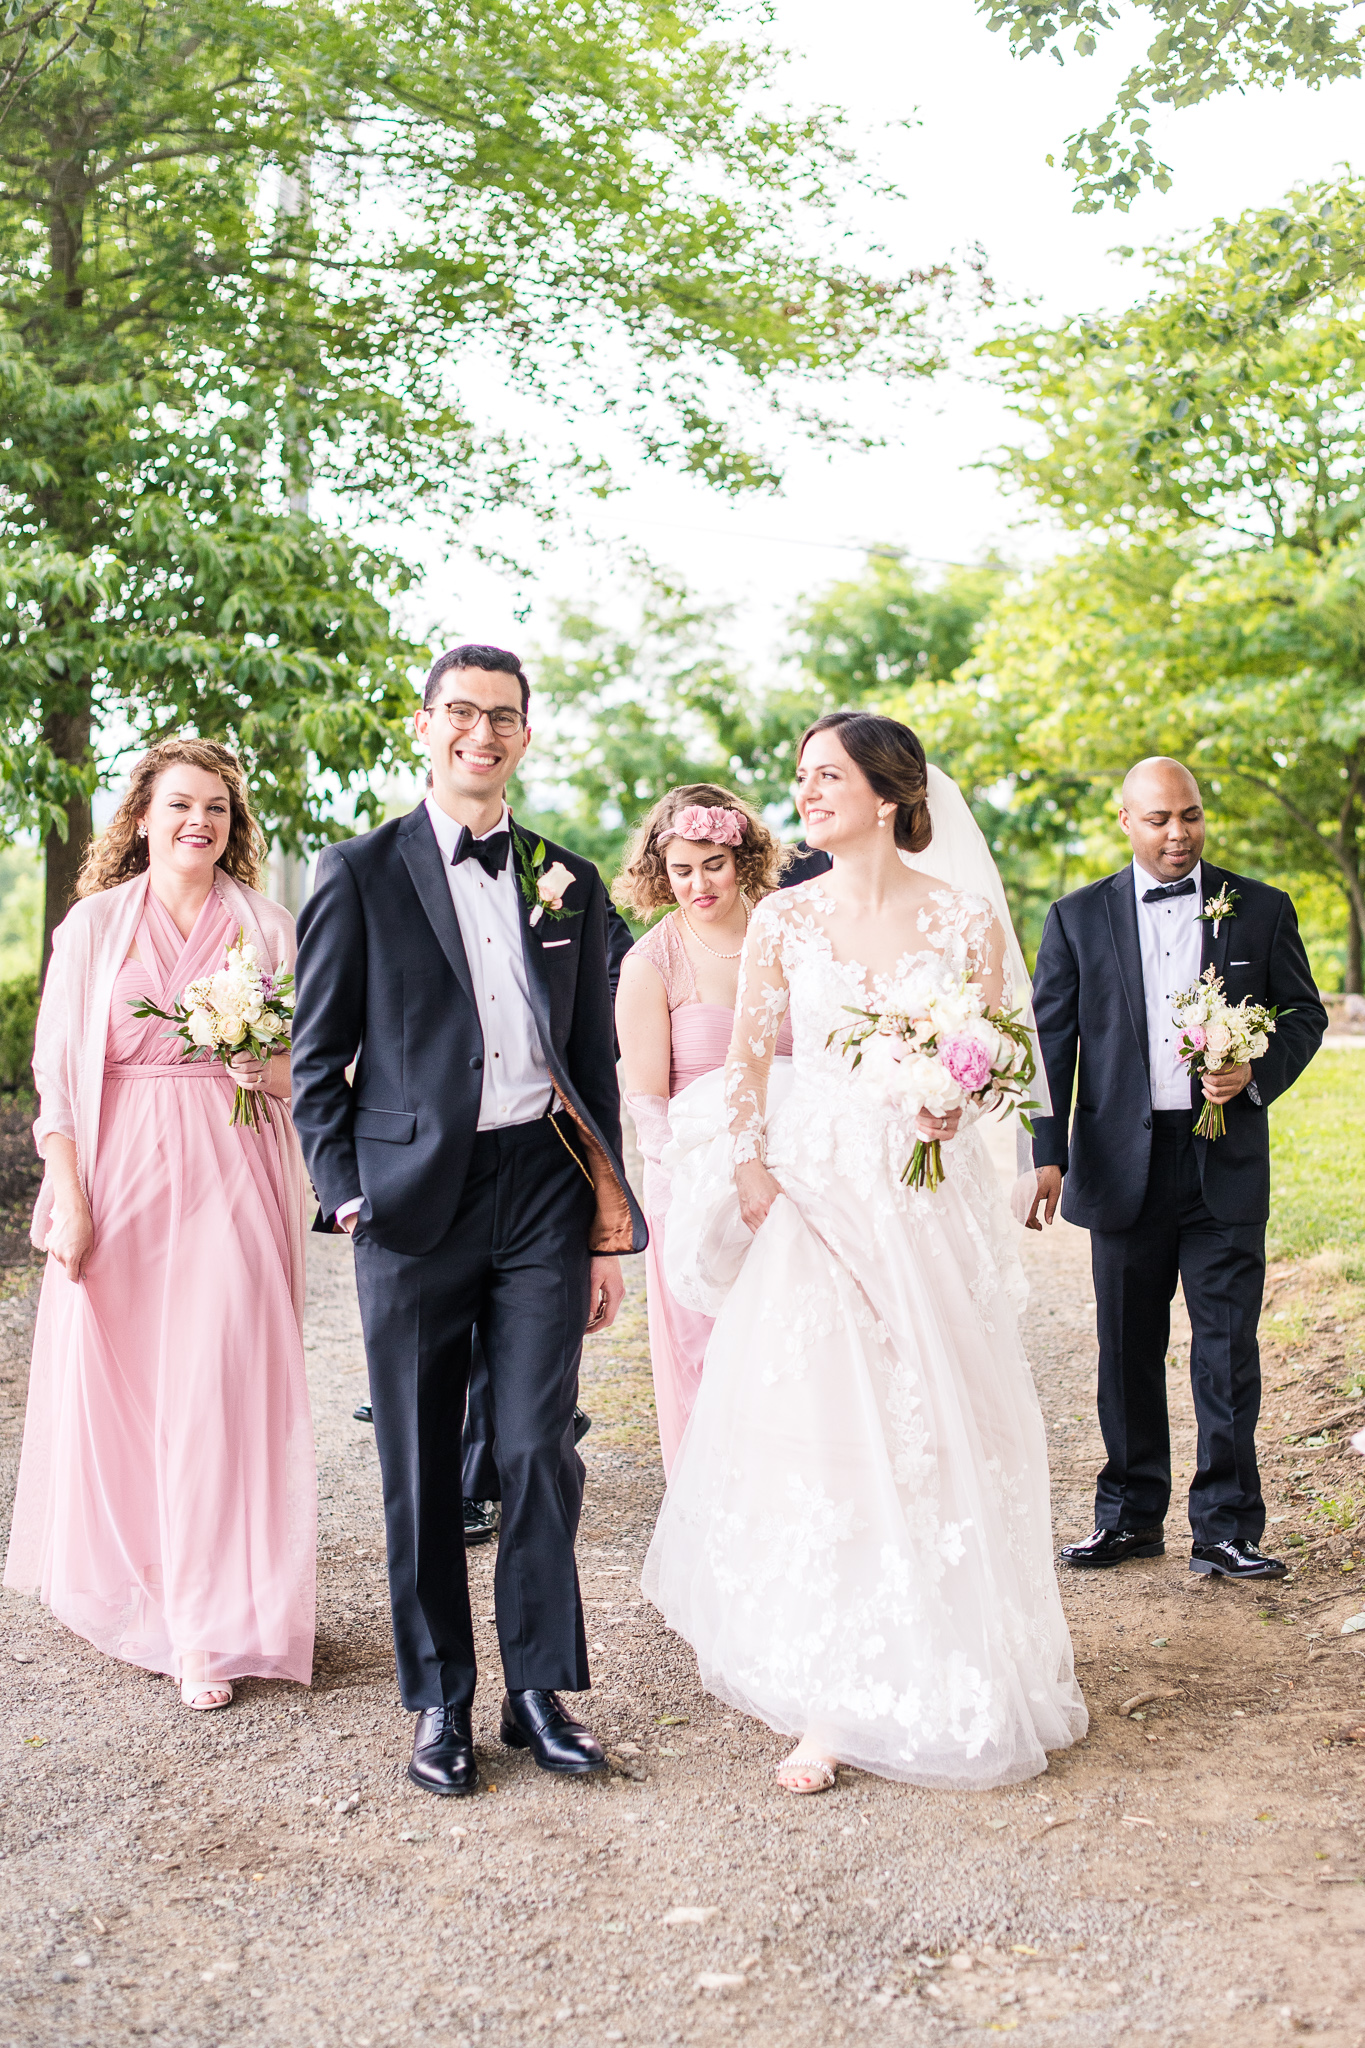 A bridal party walking together to a reception at The Barns at Hamilton Station Vineyard in Leesburg, Northern Virginia